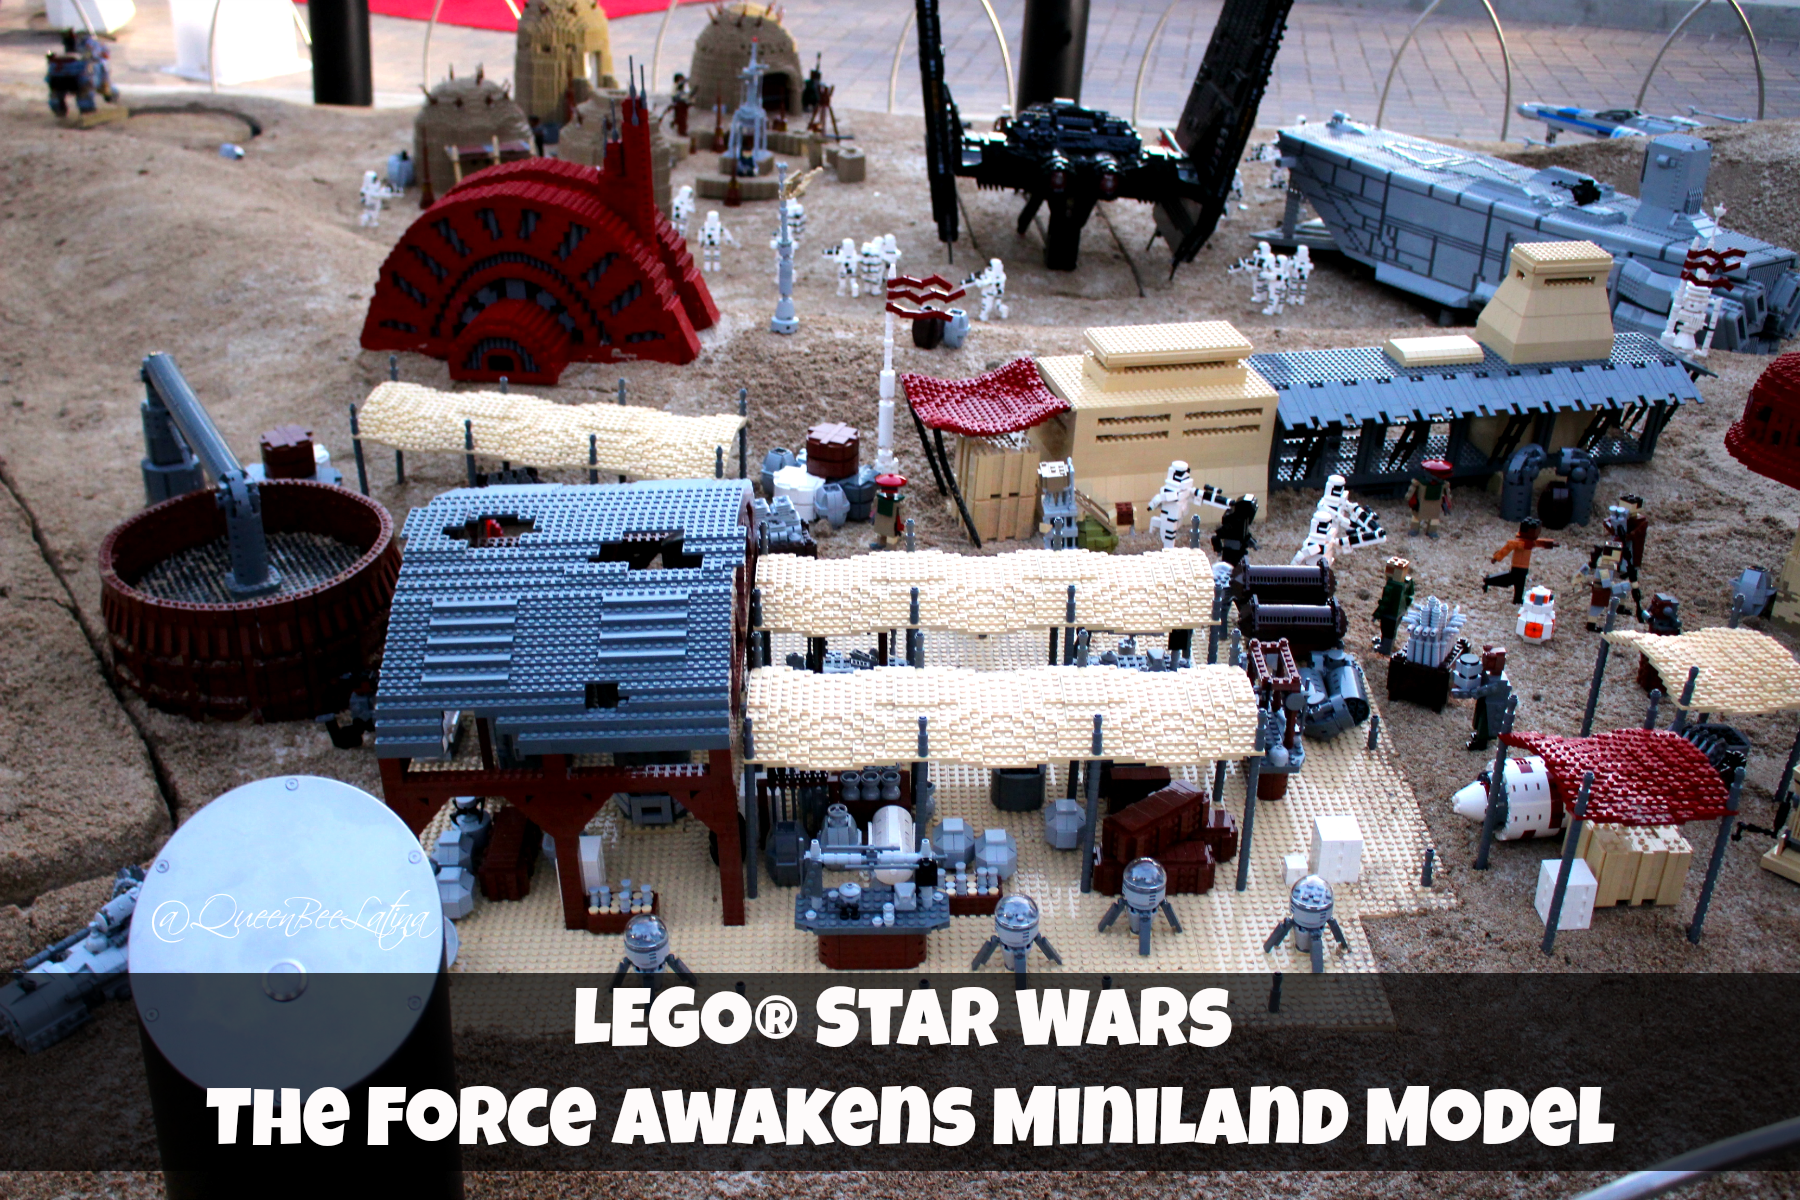 LEGO® Star Wars The Force Awakens Miniland Model